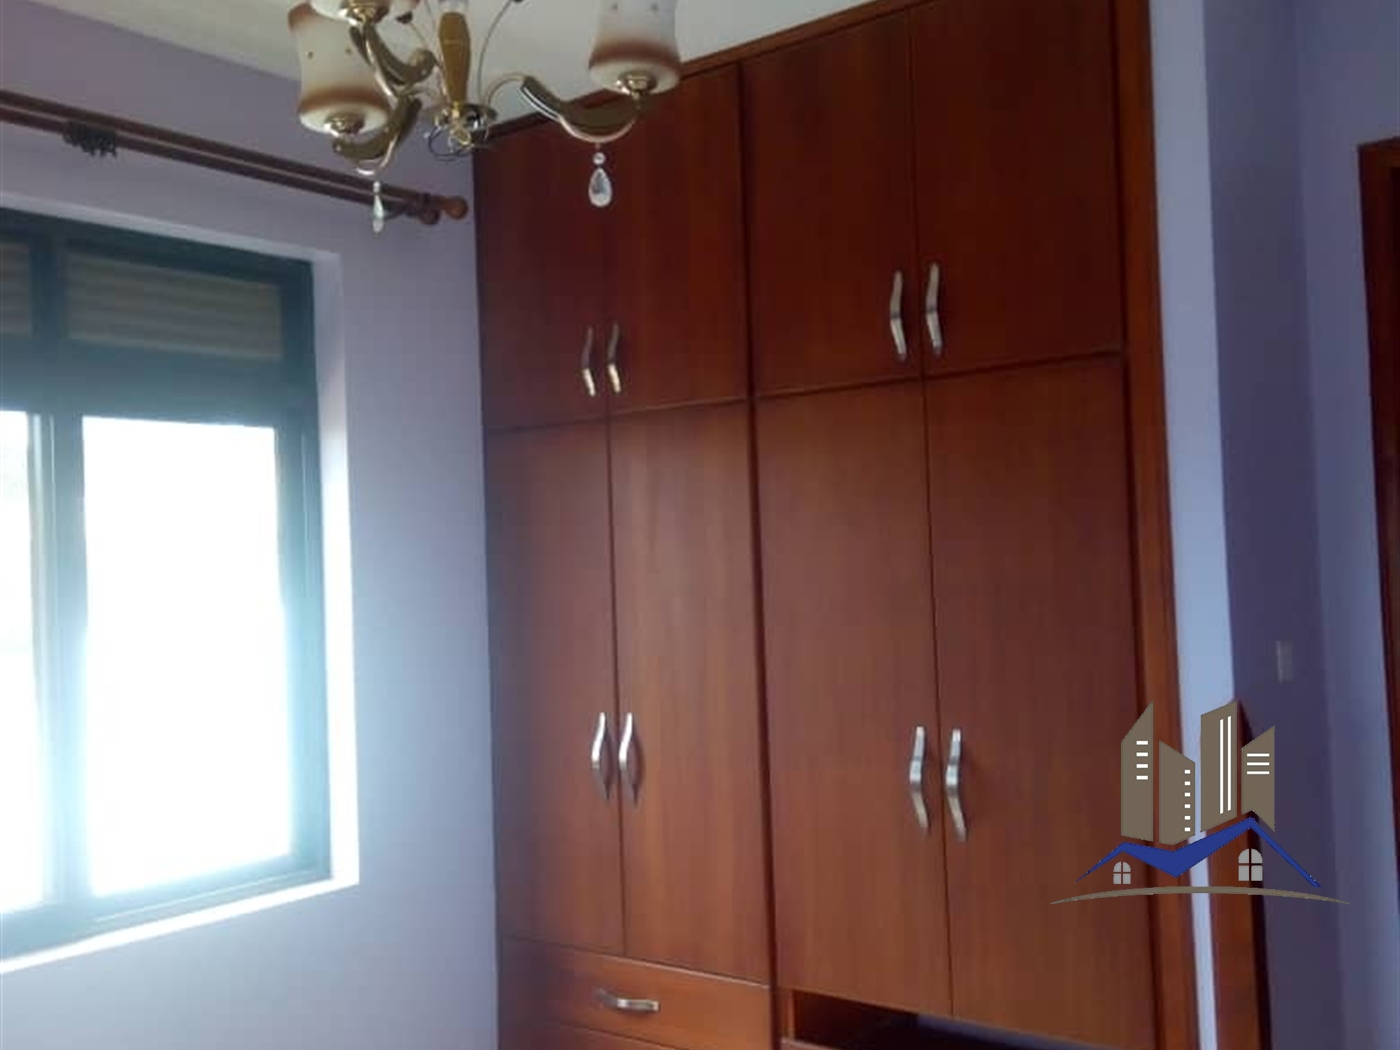 Apartment for rent in Luzira Kampala